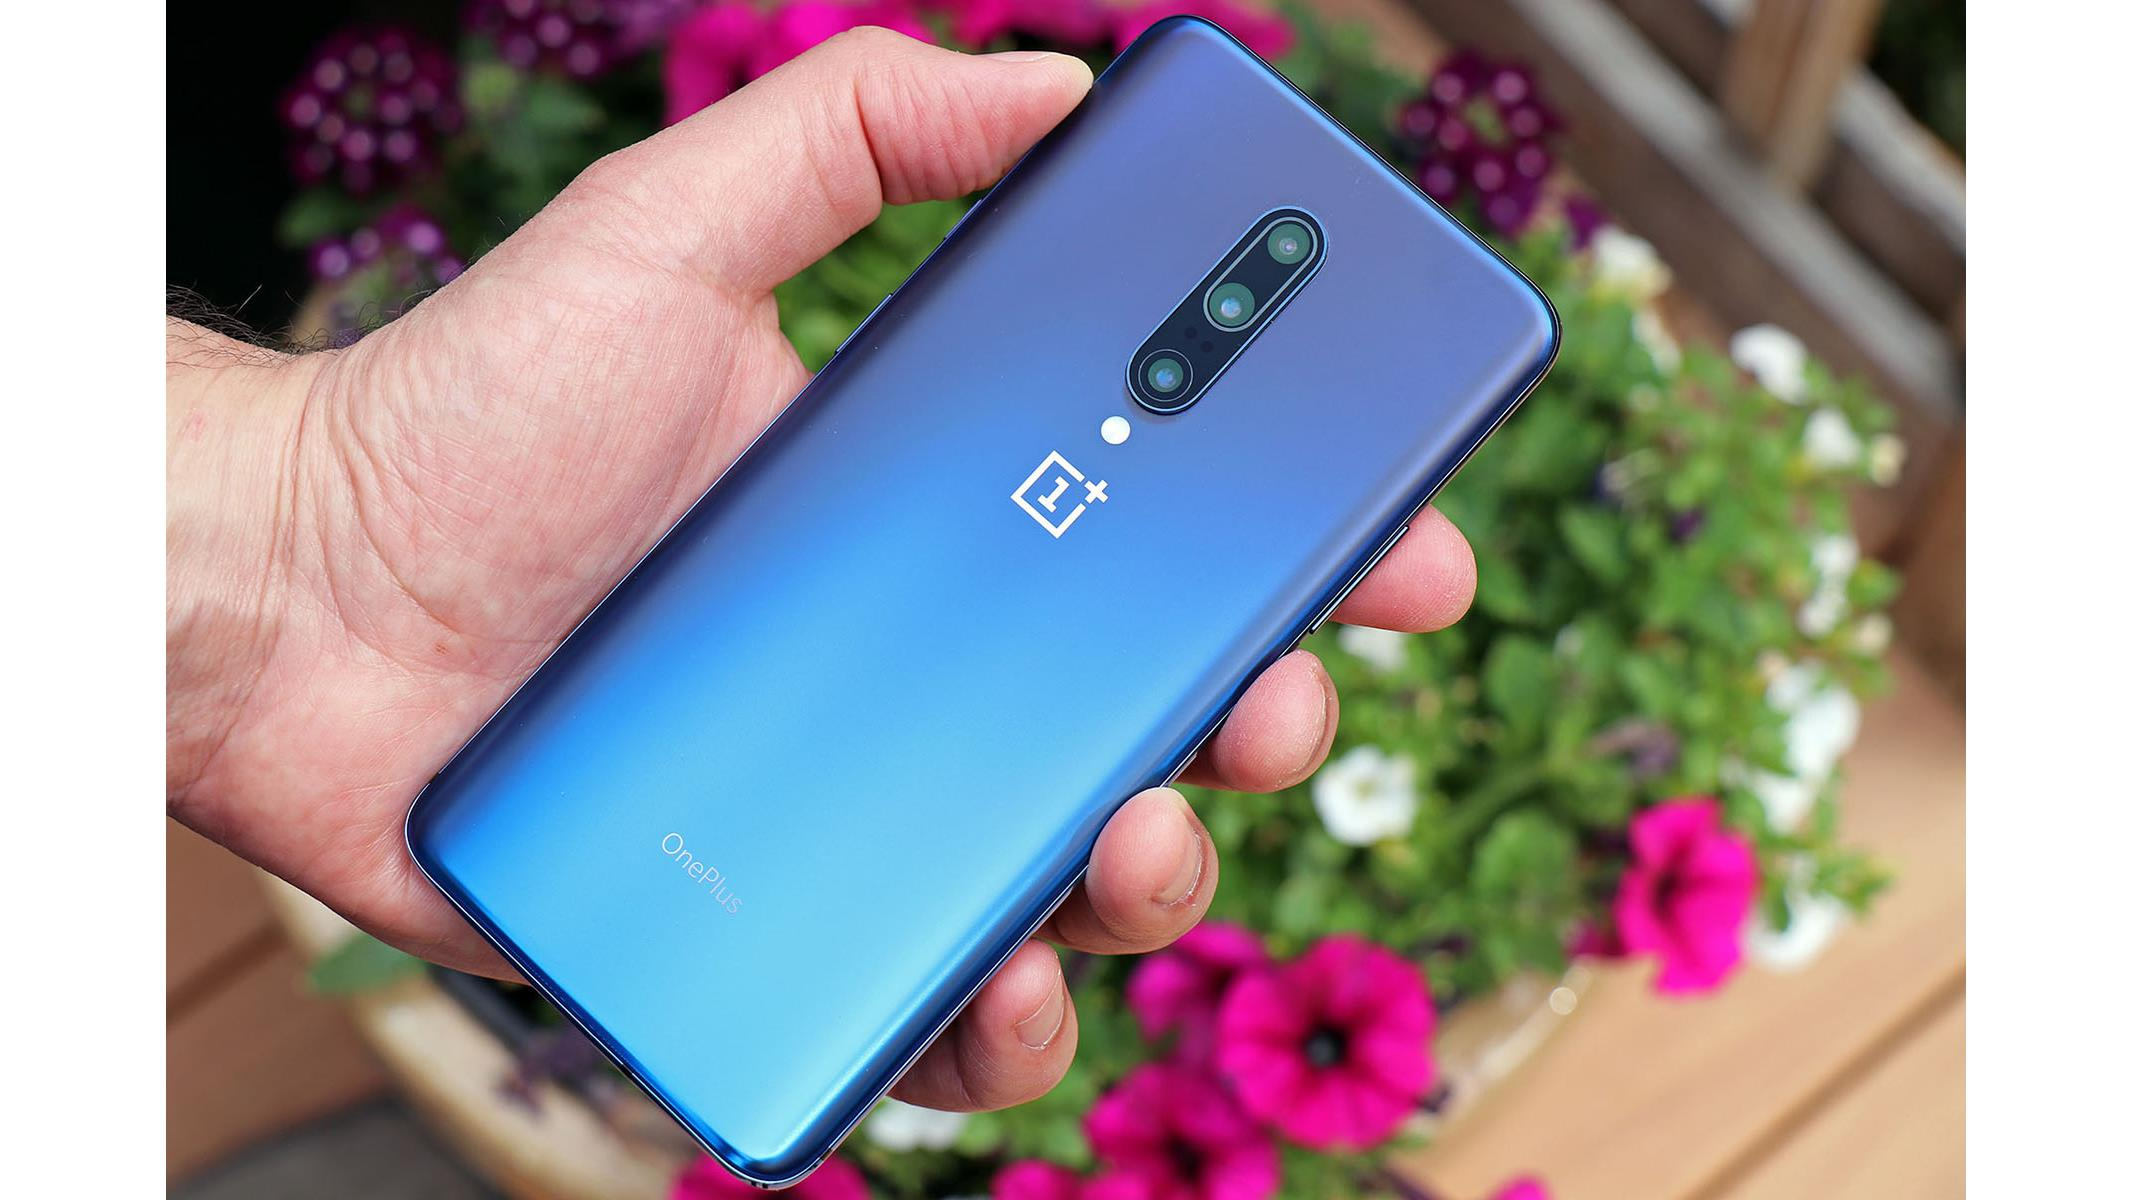 OnePlus 7 Pro Review: Killer Display, Great Performance And